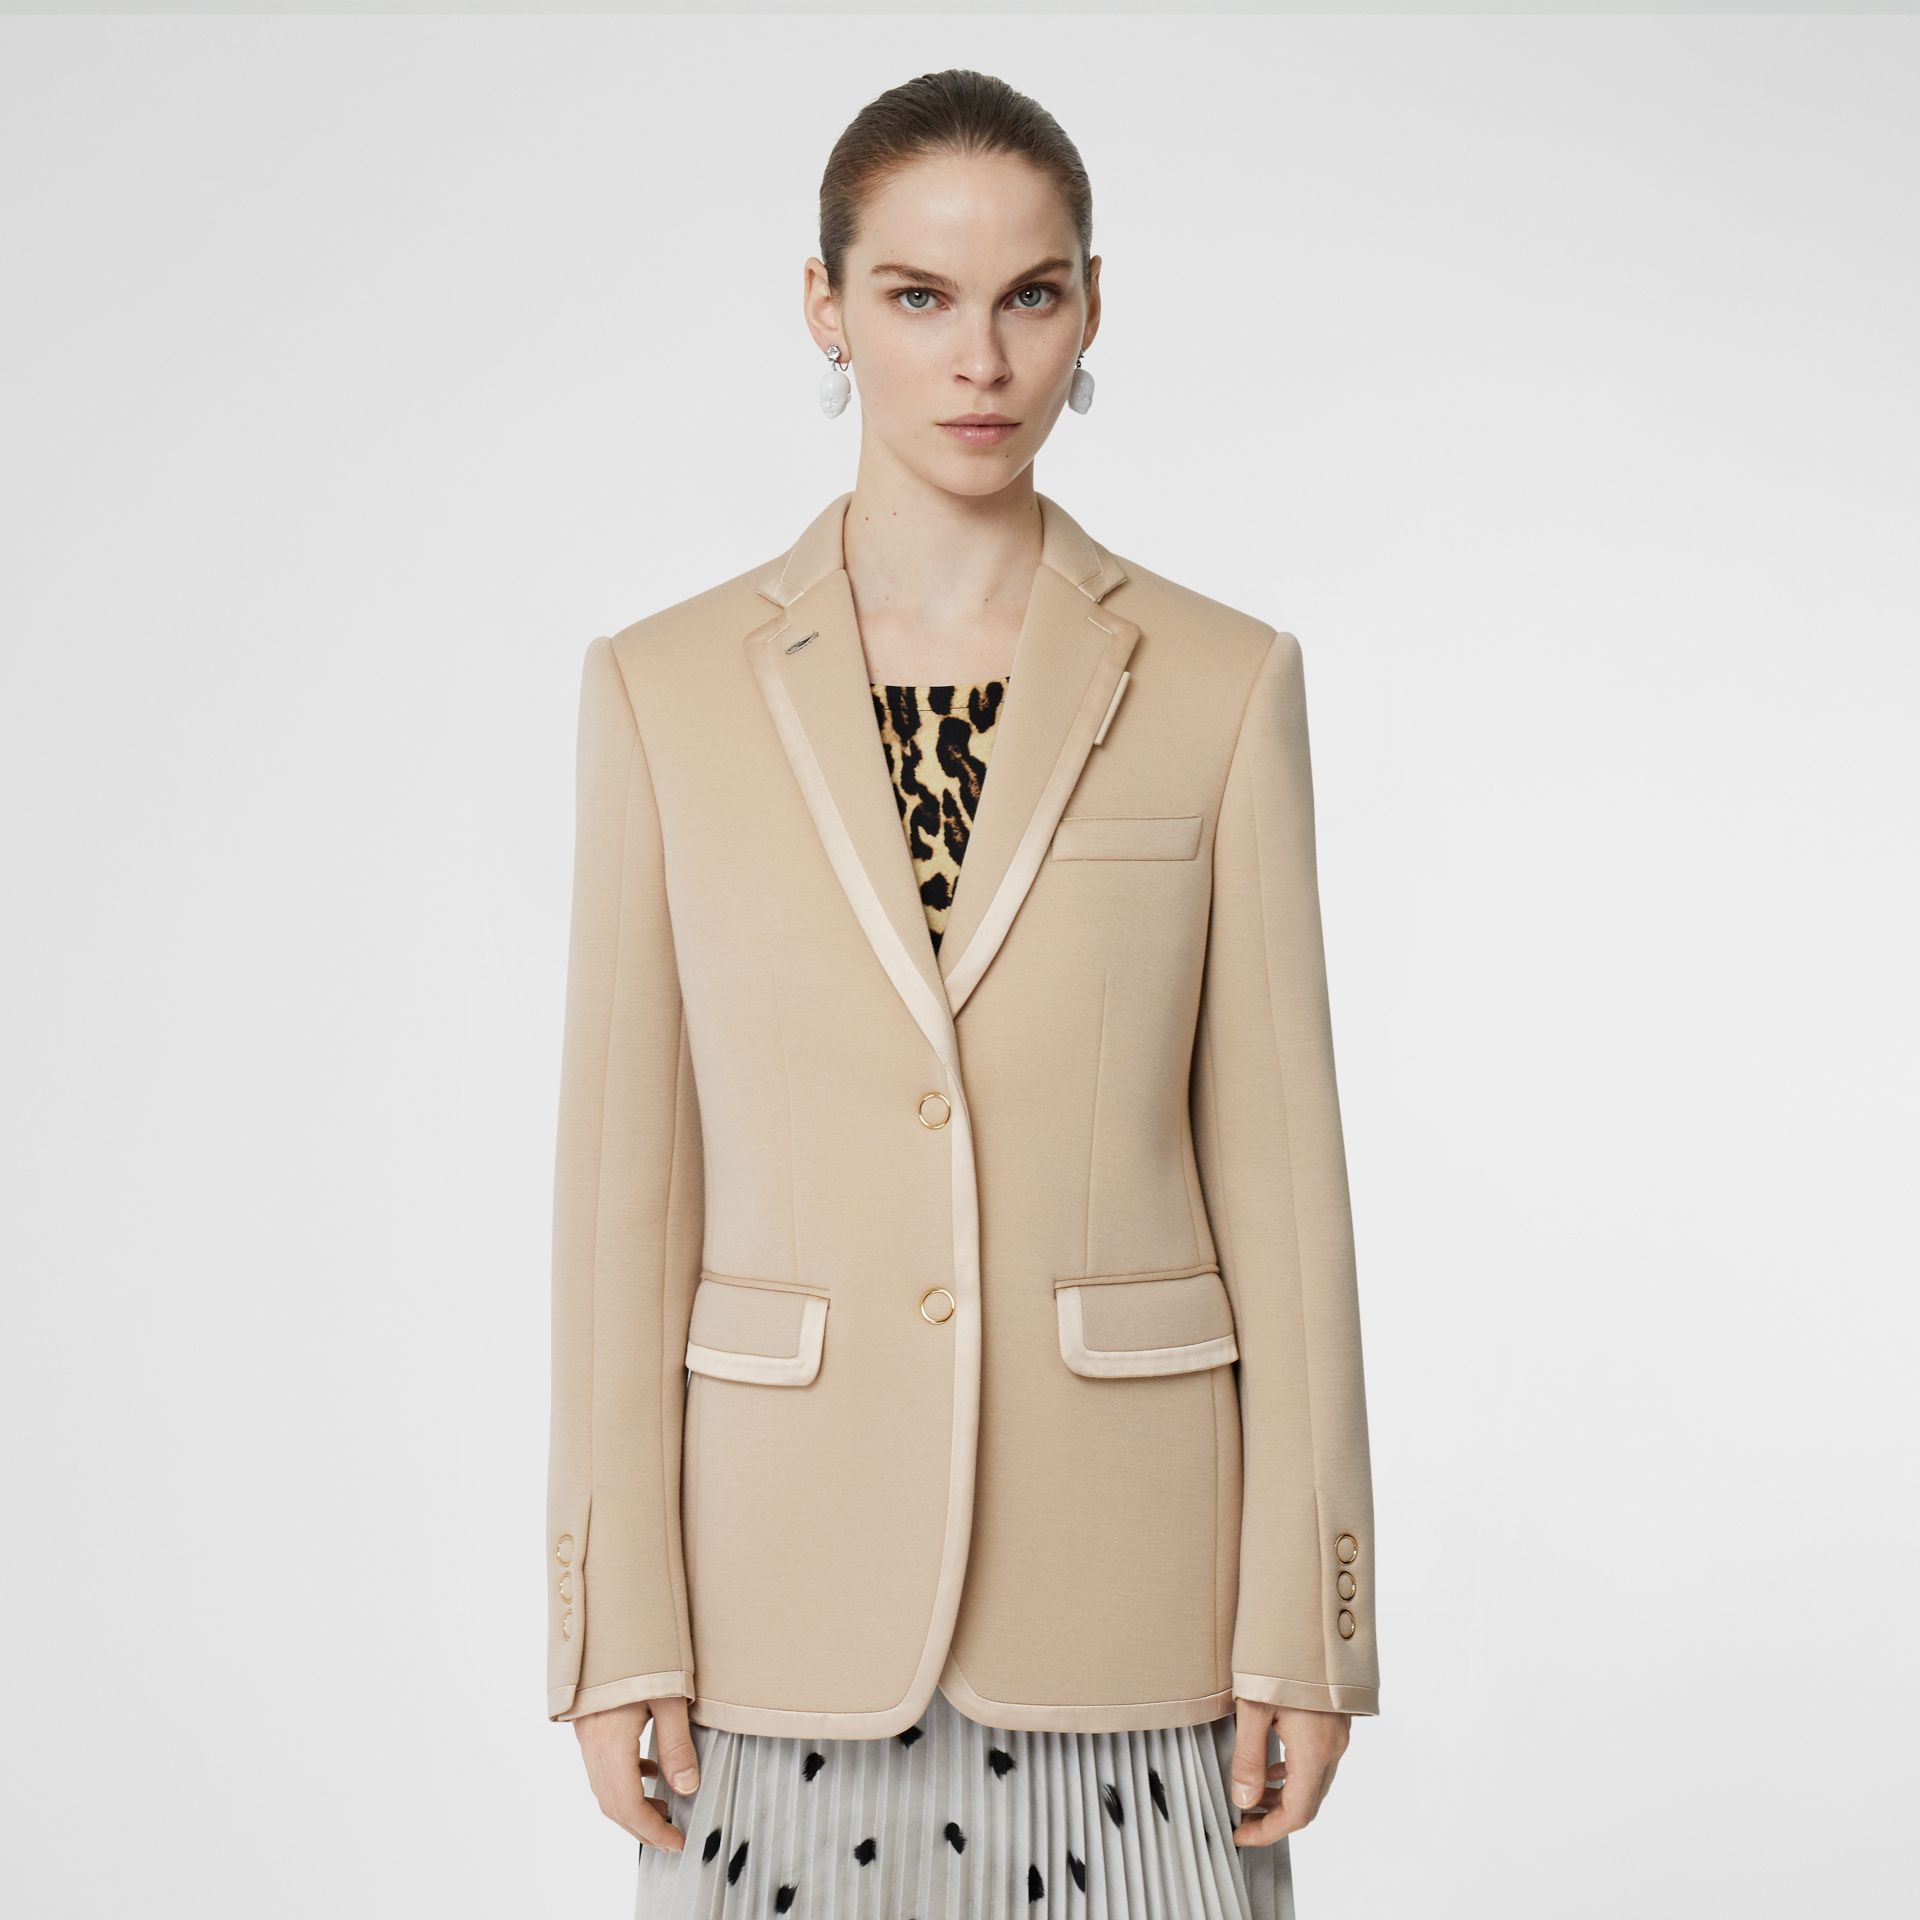 Silk Trim Neoprene Blazer in Teddy Beige - Women | Burberry United States - gallery image 5